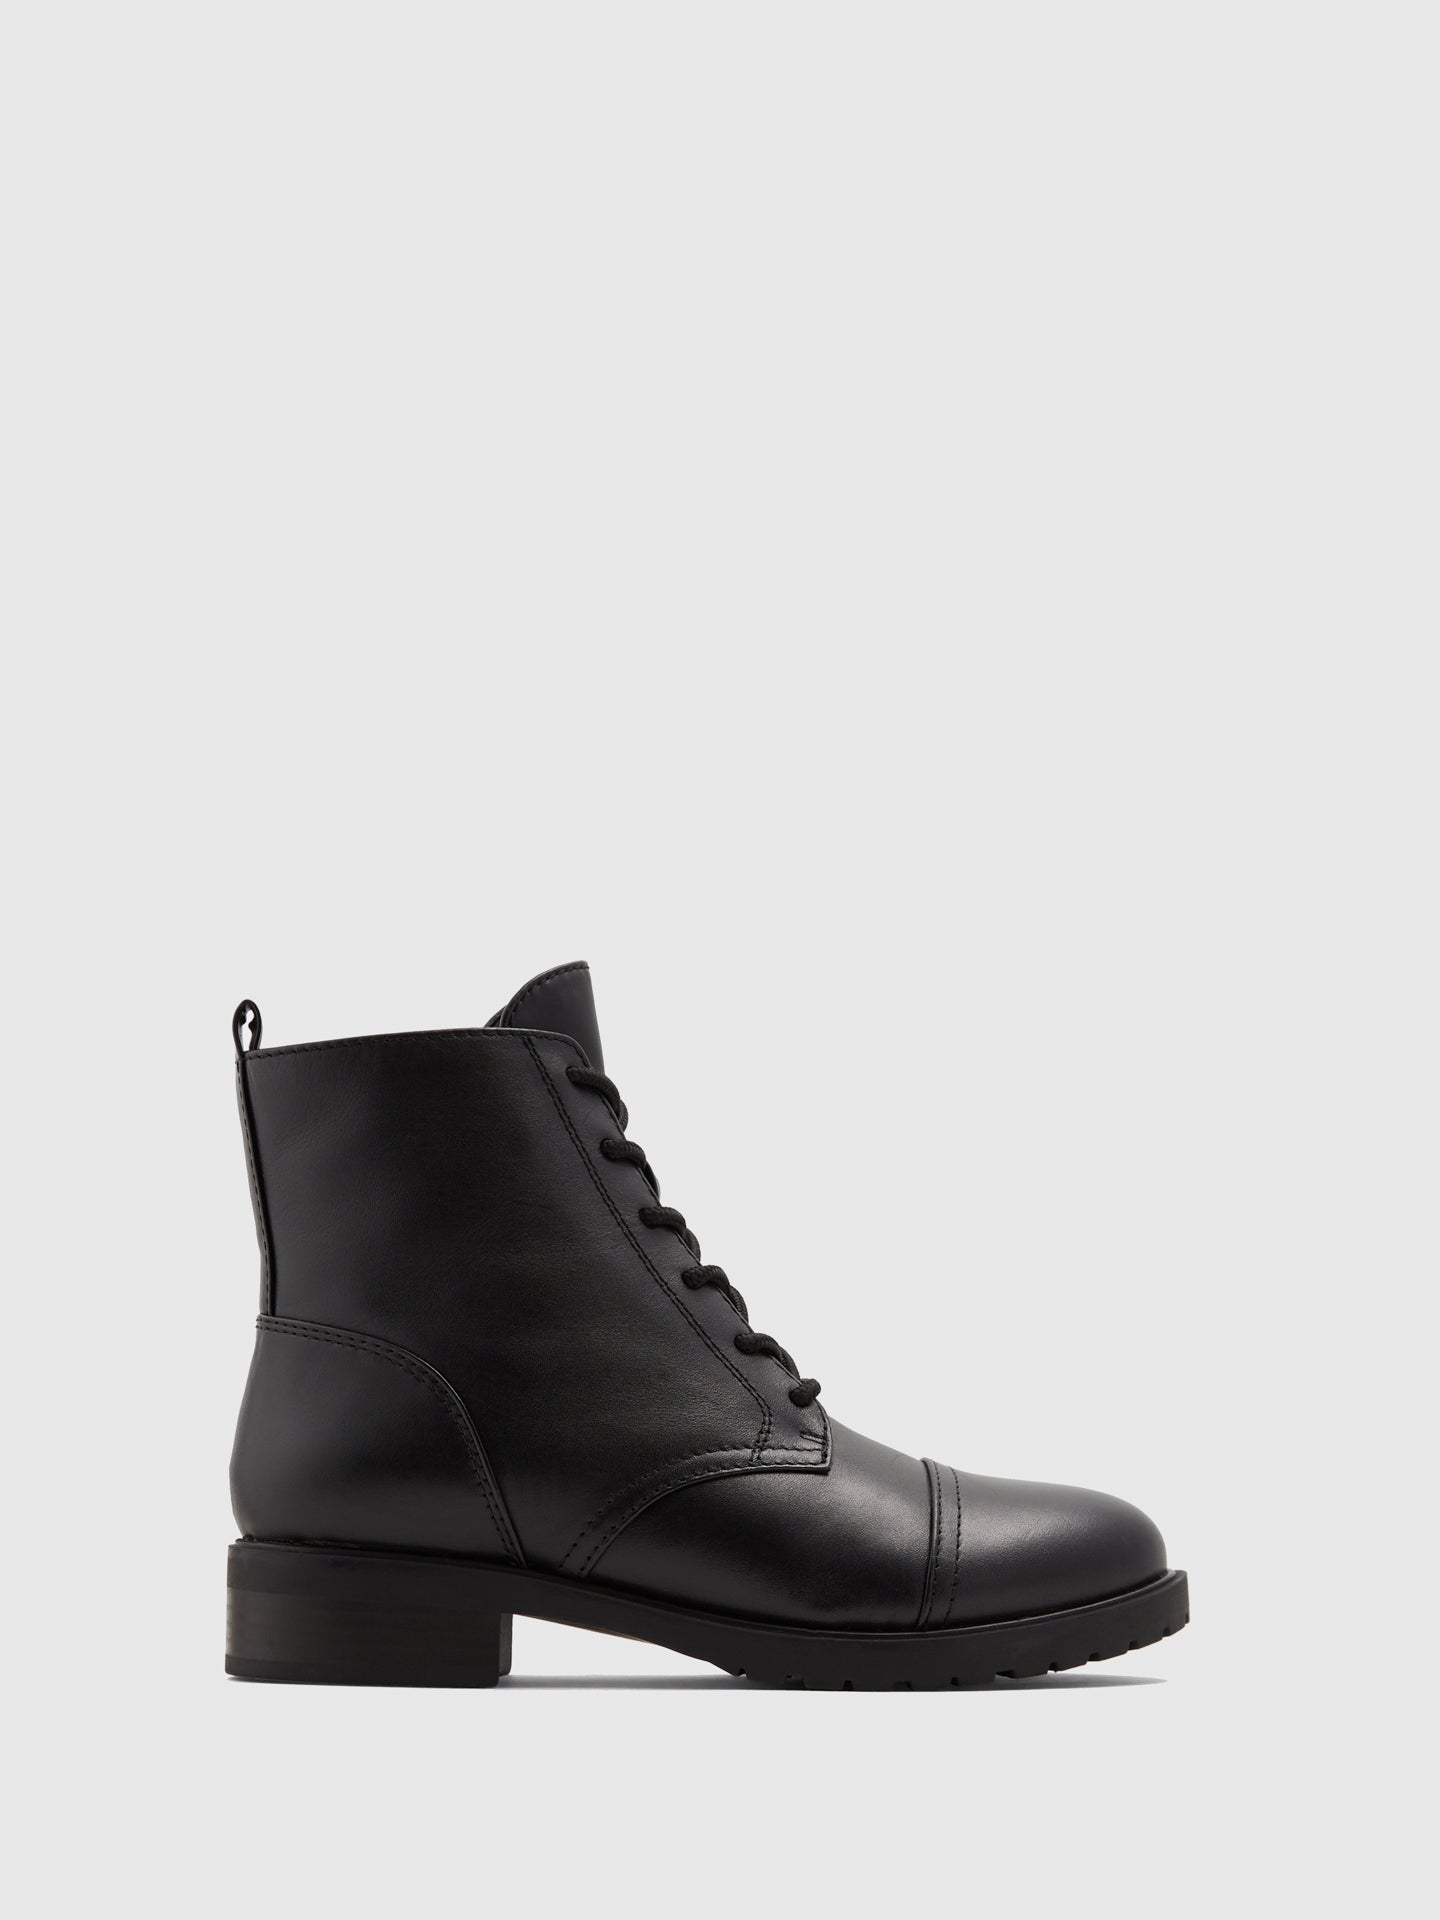 Aldo Black Leather Zip Up Boots